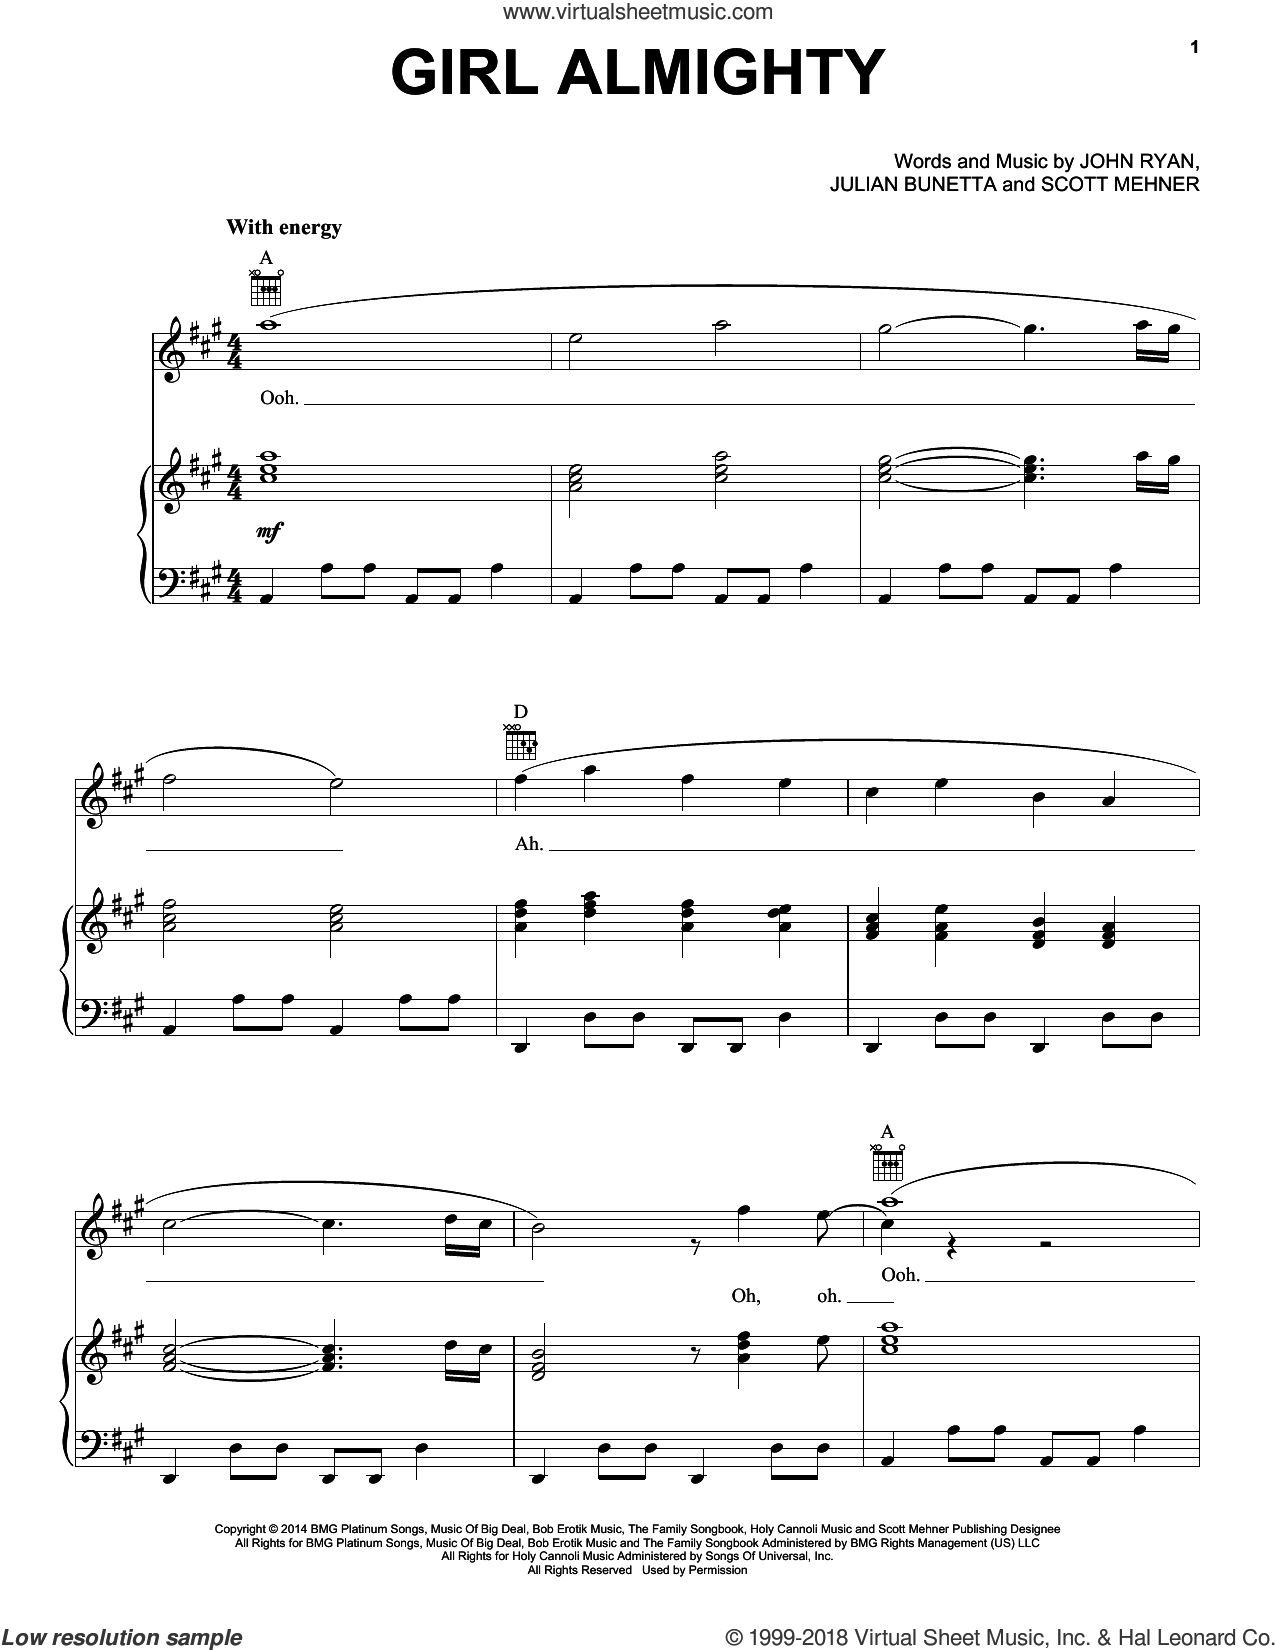 Girl Almighty sheet music for voice, piano or guitar by One Direction, John Ryan and Julian Bunetta. Score Image Preview.